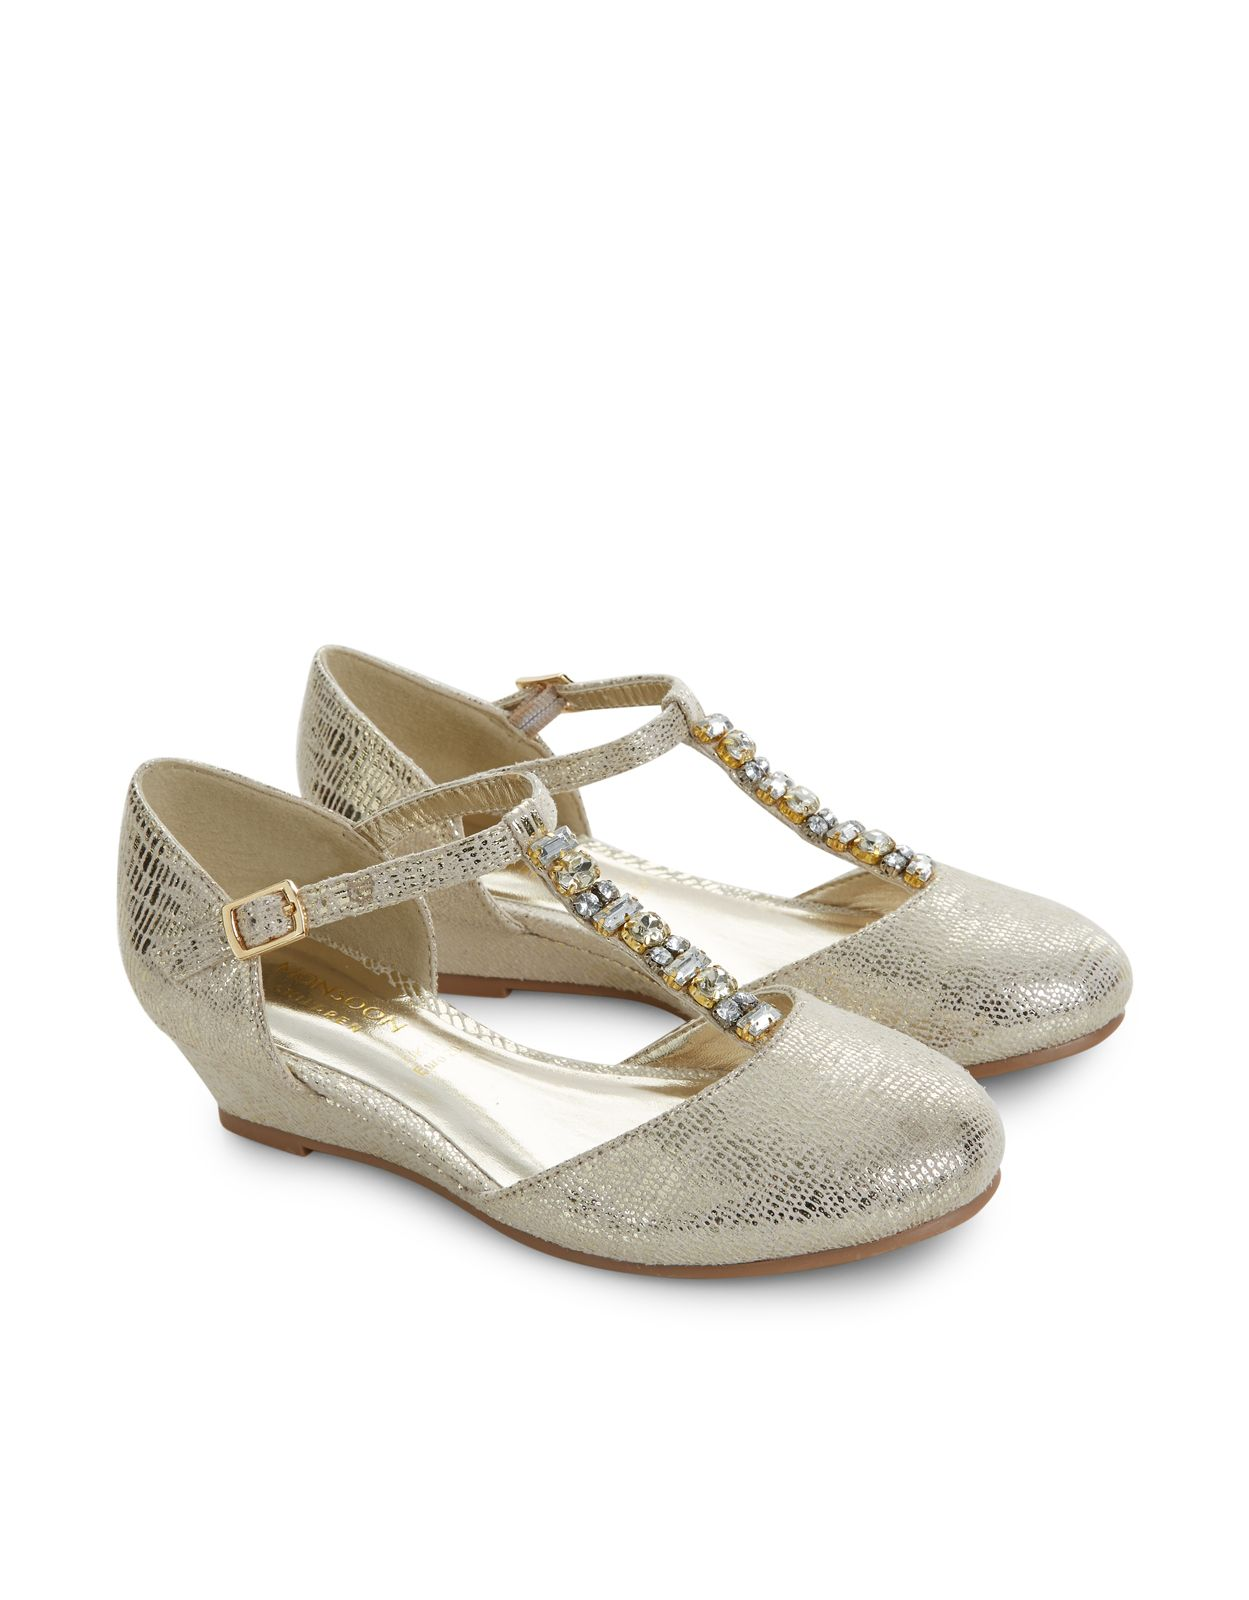 8405ae69e0f1 Get party perfect with our shimmering two-part wedge shoes for girls ...